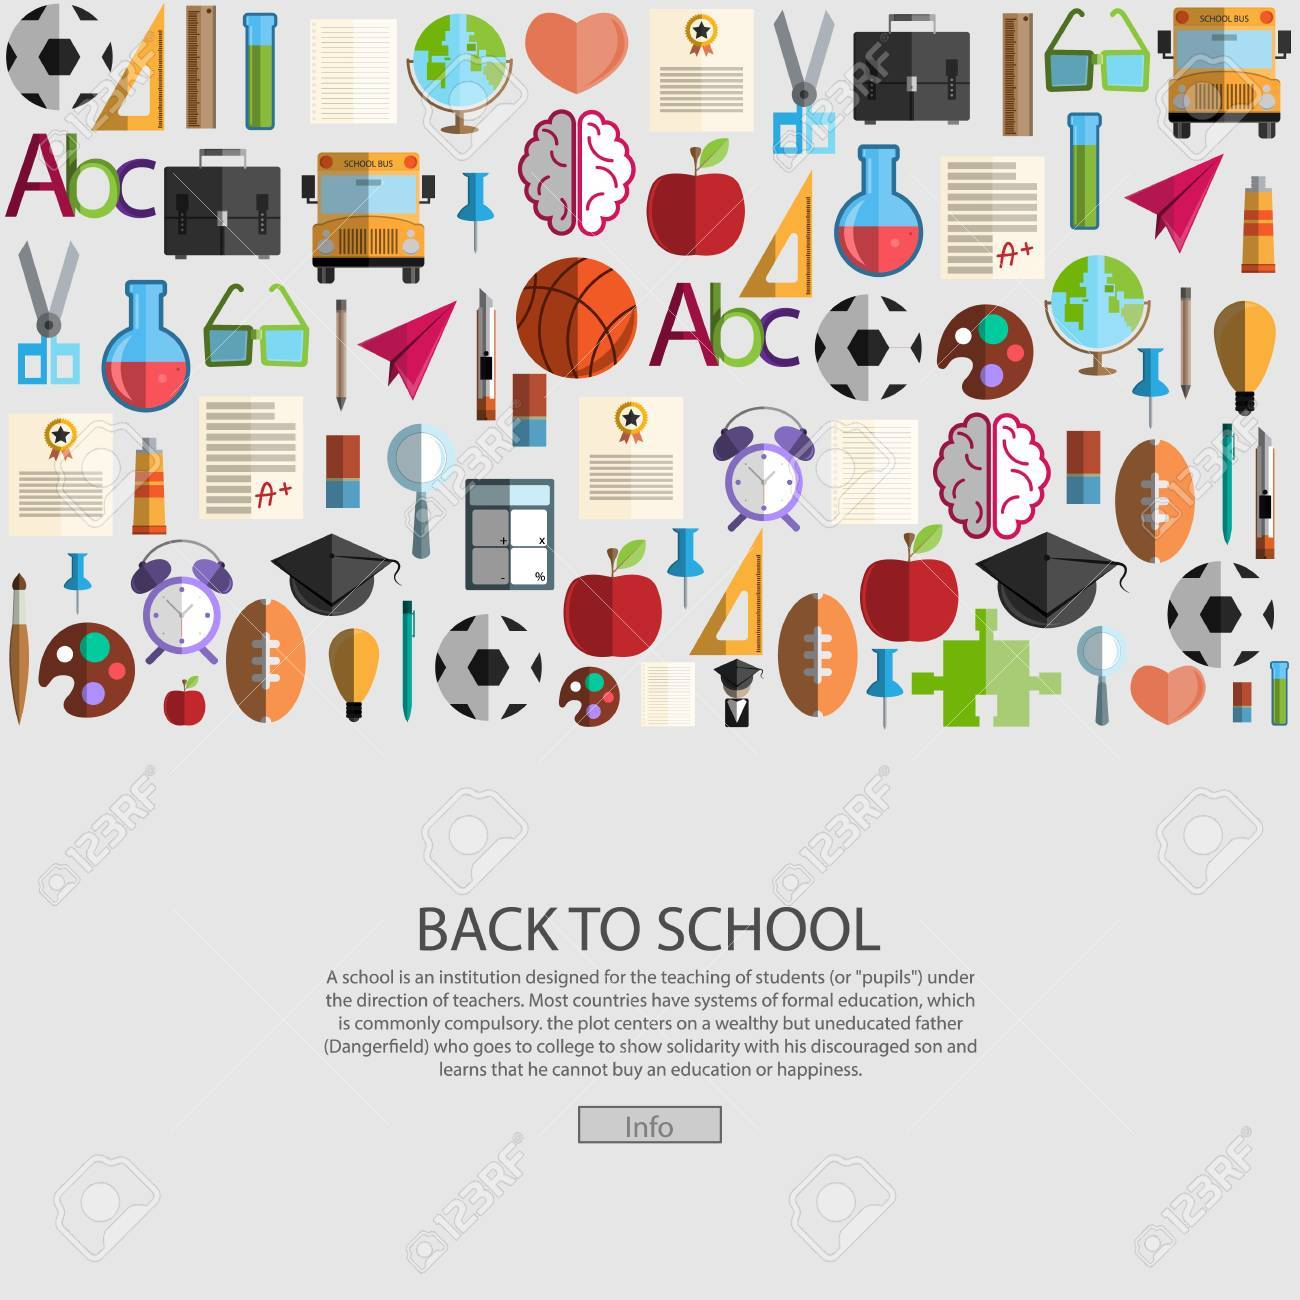 Back to School icon background, illustration vector. - 42234705